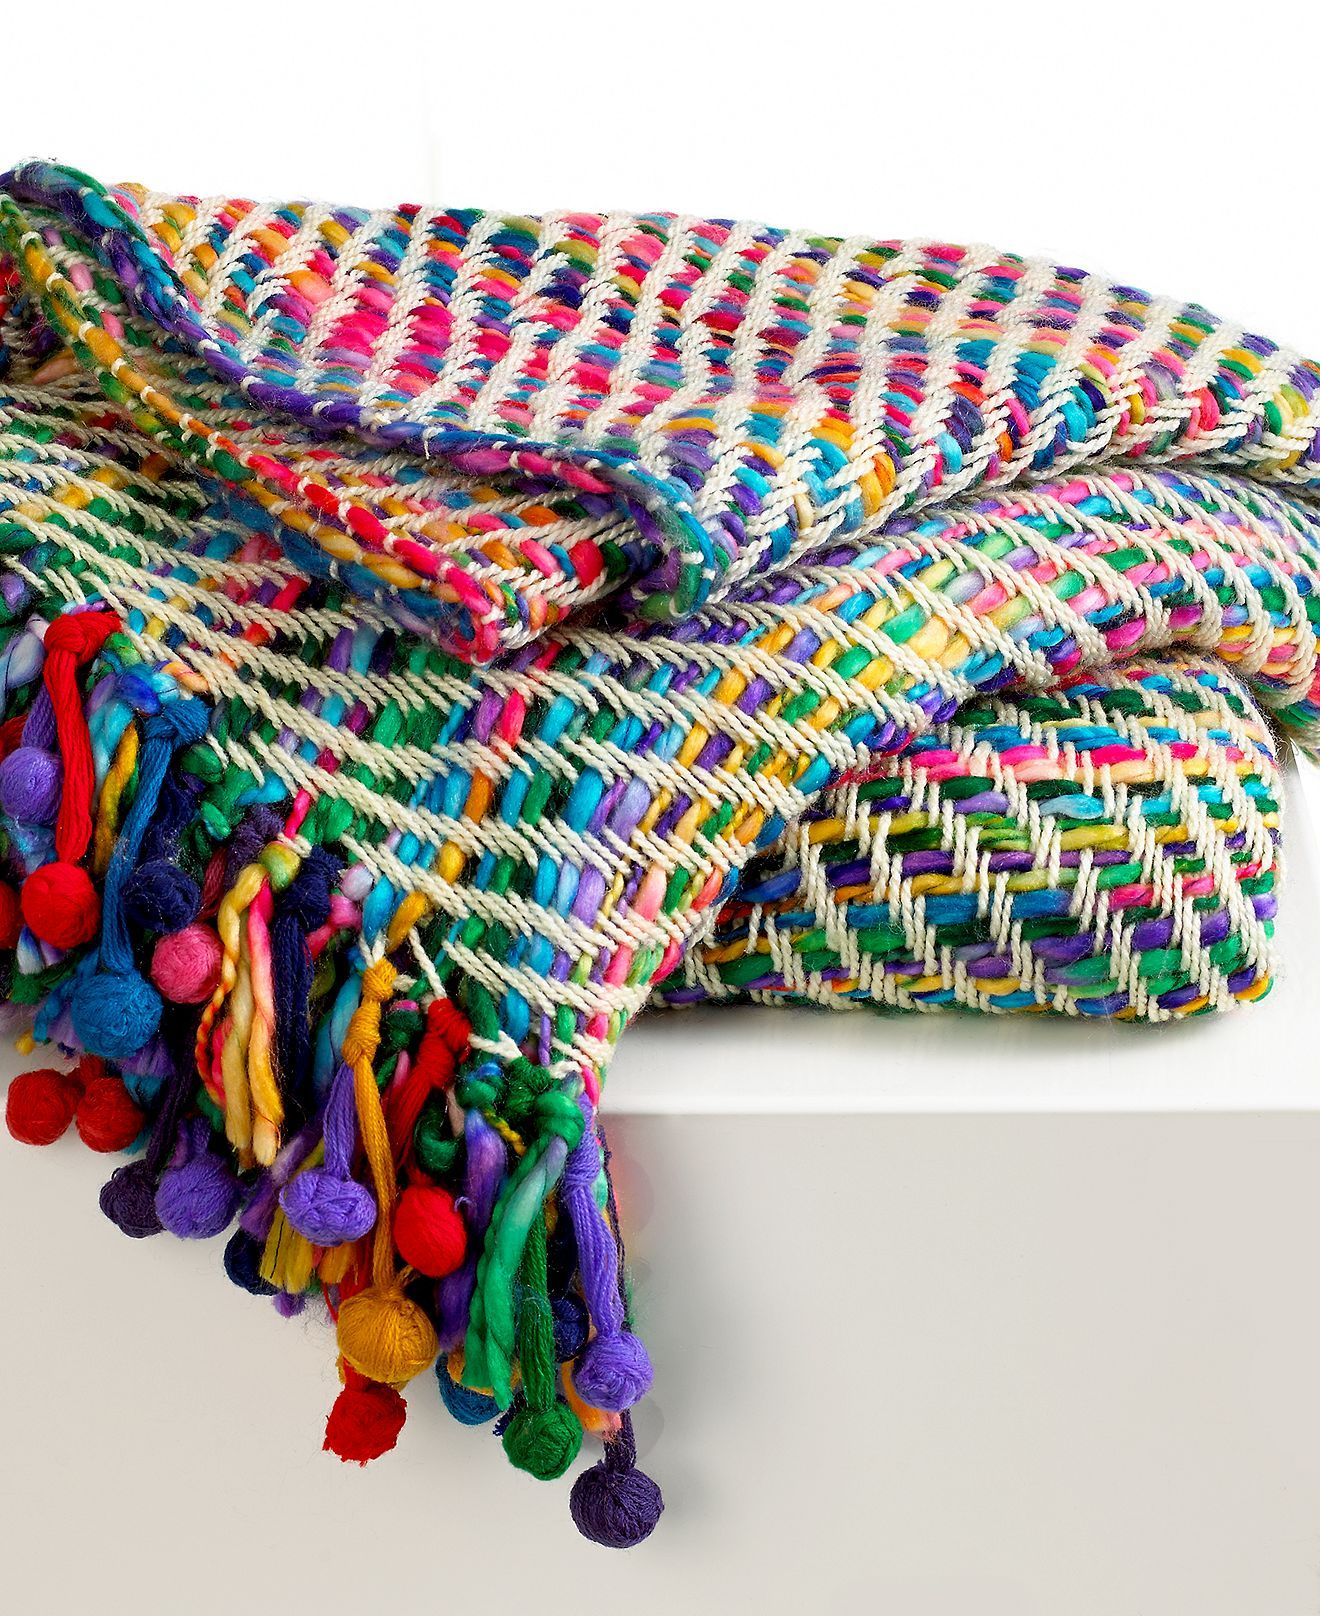 collier campbell blankets colorful pompom fringe throw  - collier campbell blankets colorful pompom fringe throw  blankets  throws bed